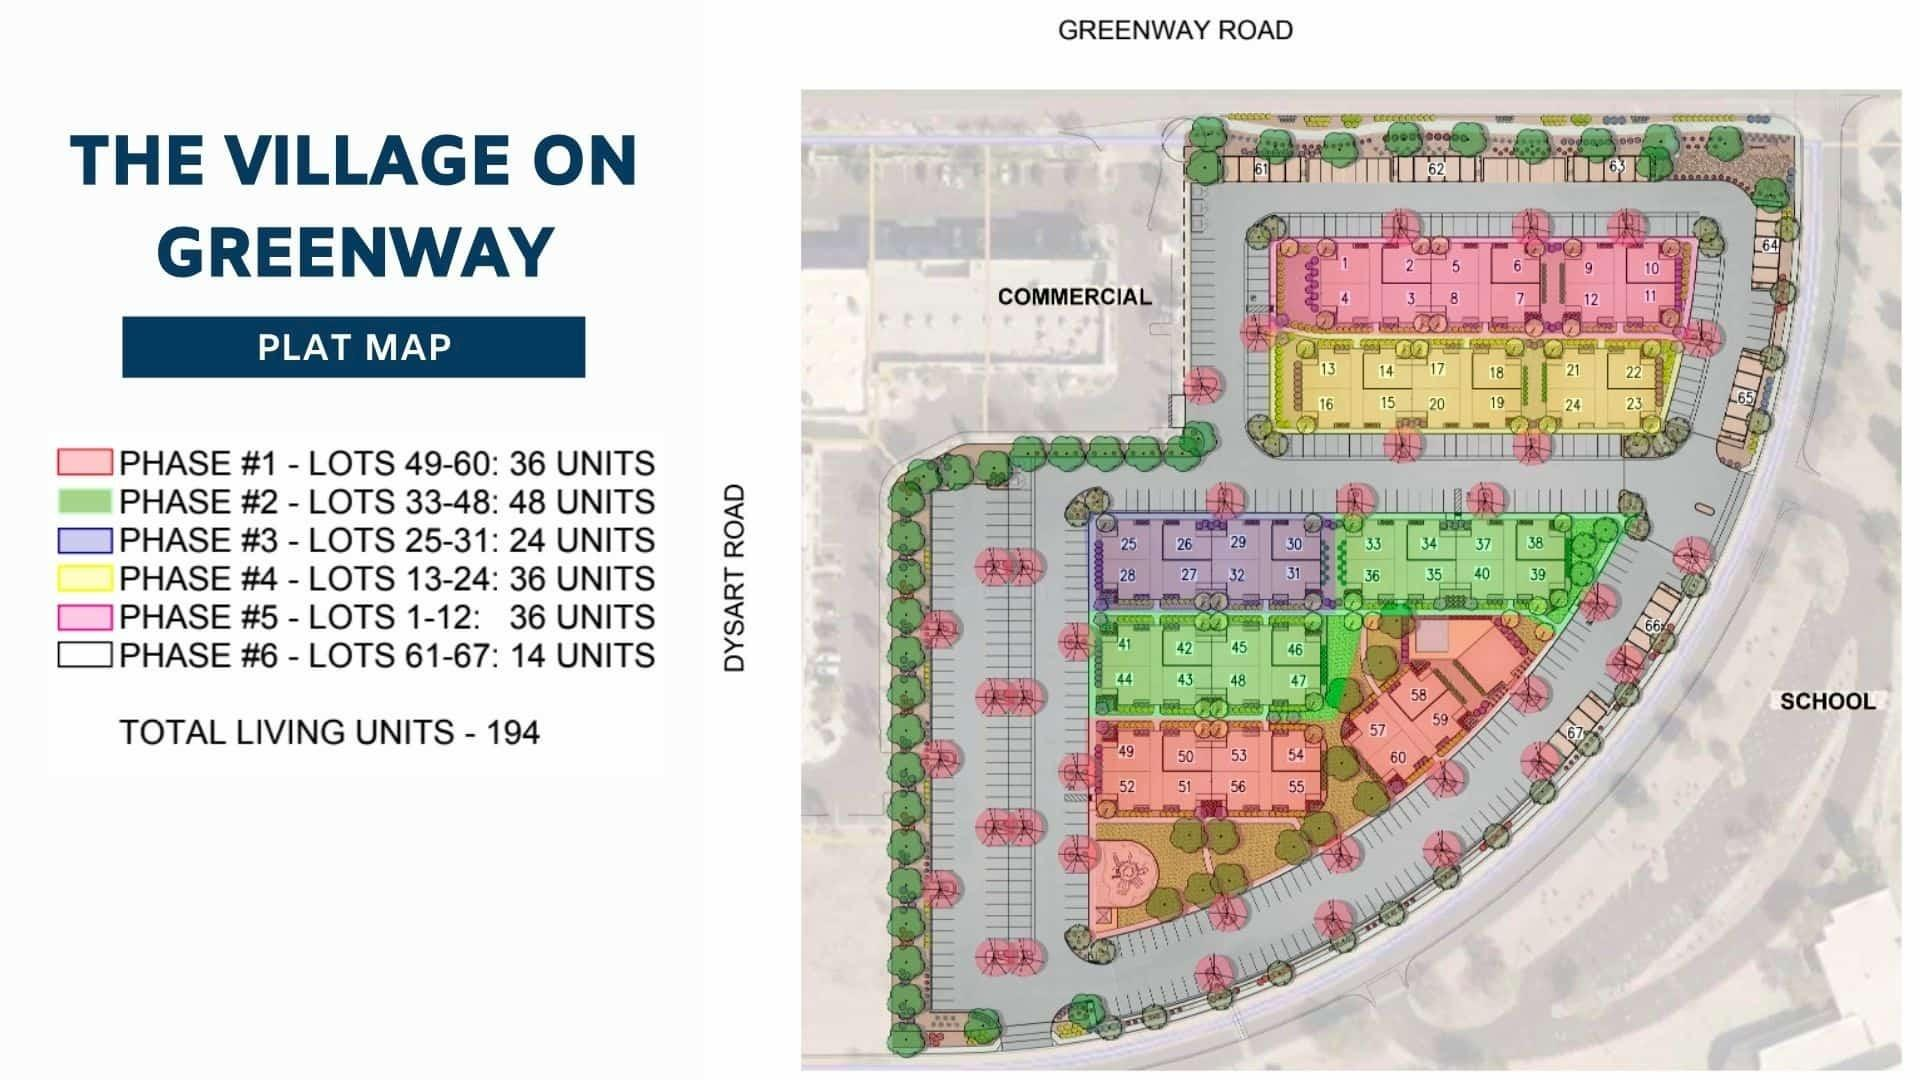 small multifamily units called the Village on Greenway